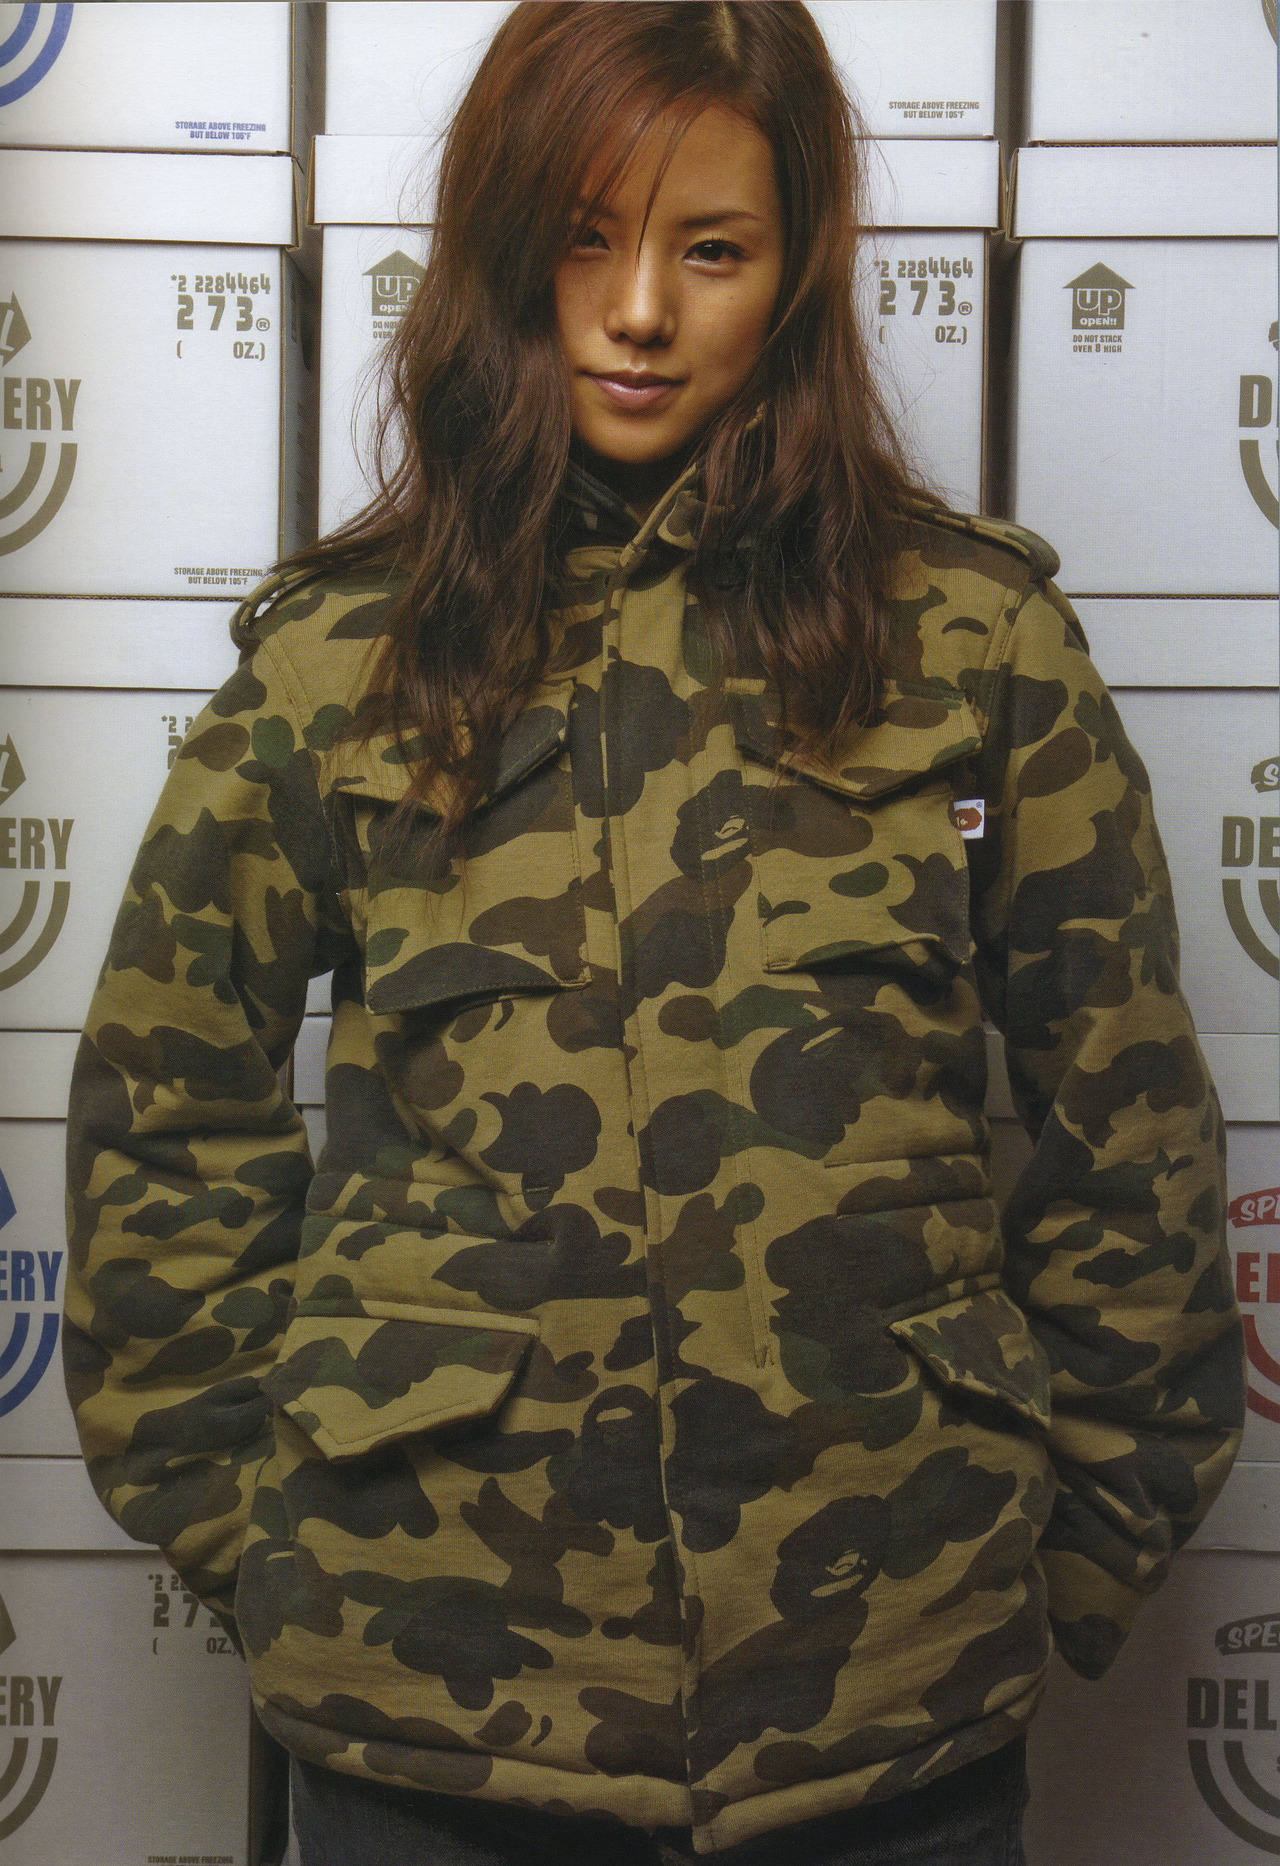 organization:  Manami Konishi, 2004 A Bathing Ape by Nigo